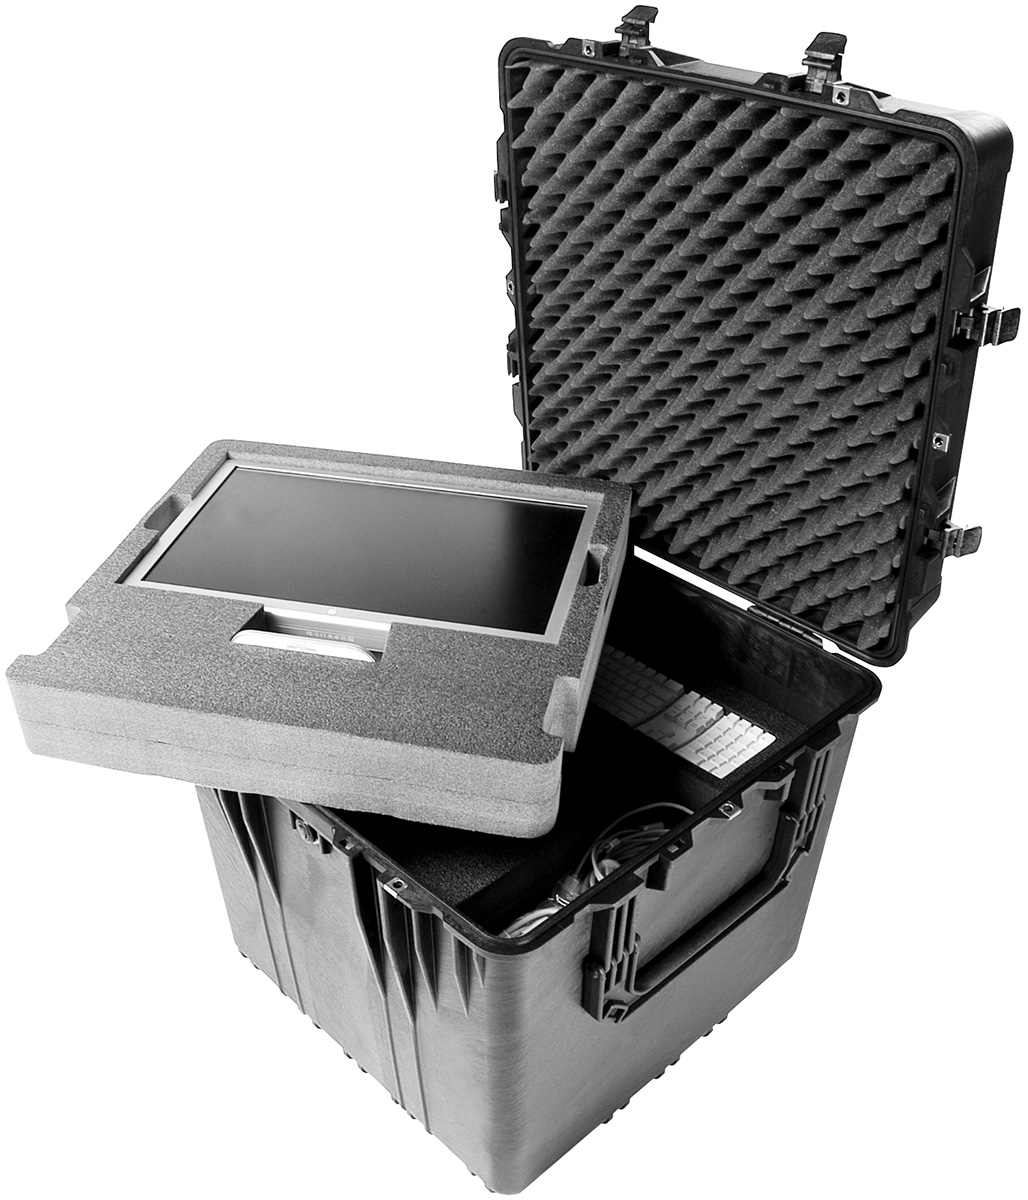 pelican peli products 0370 large shipping transport case